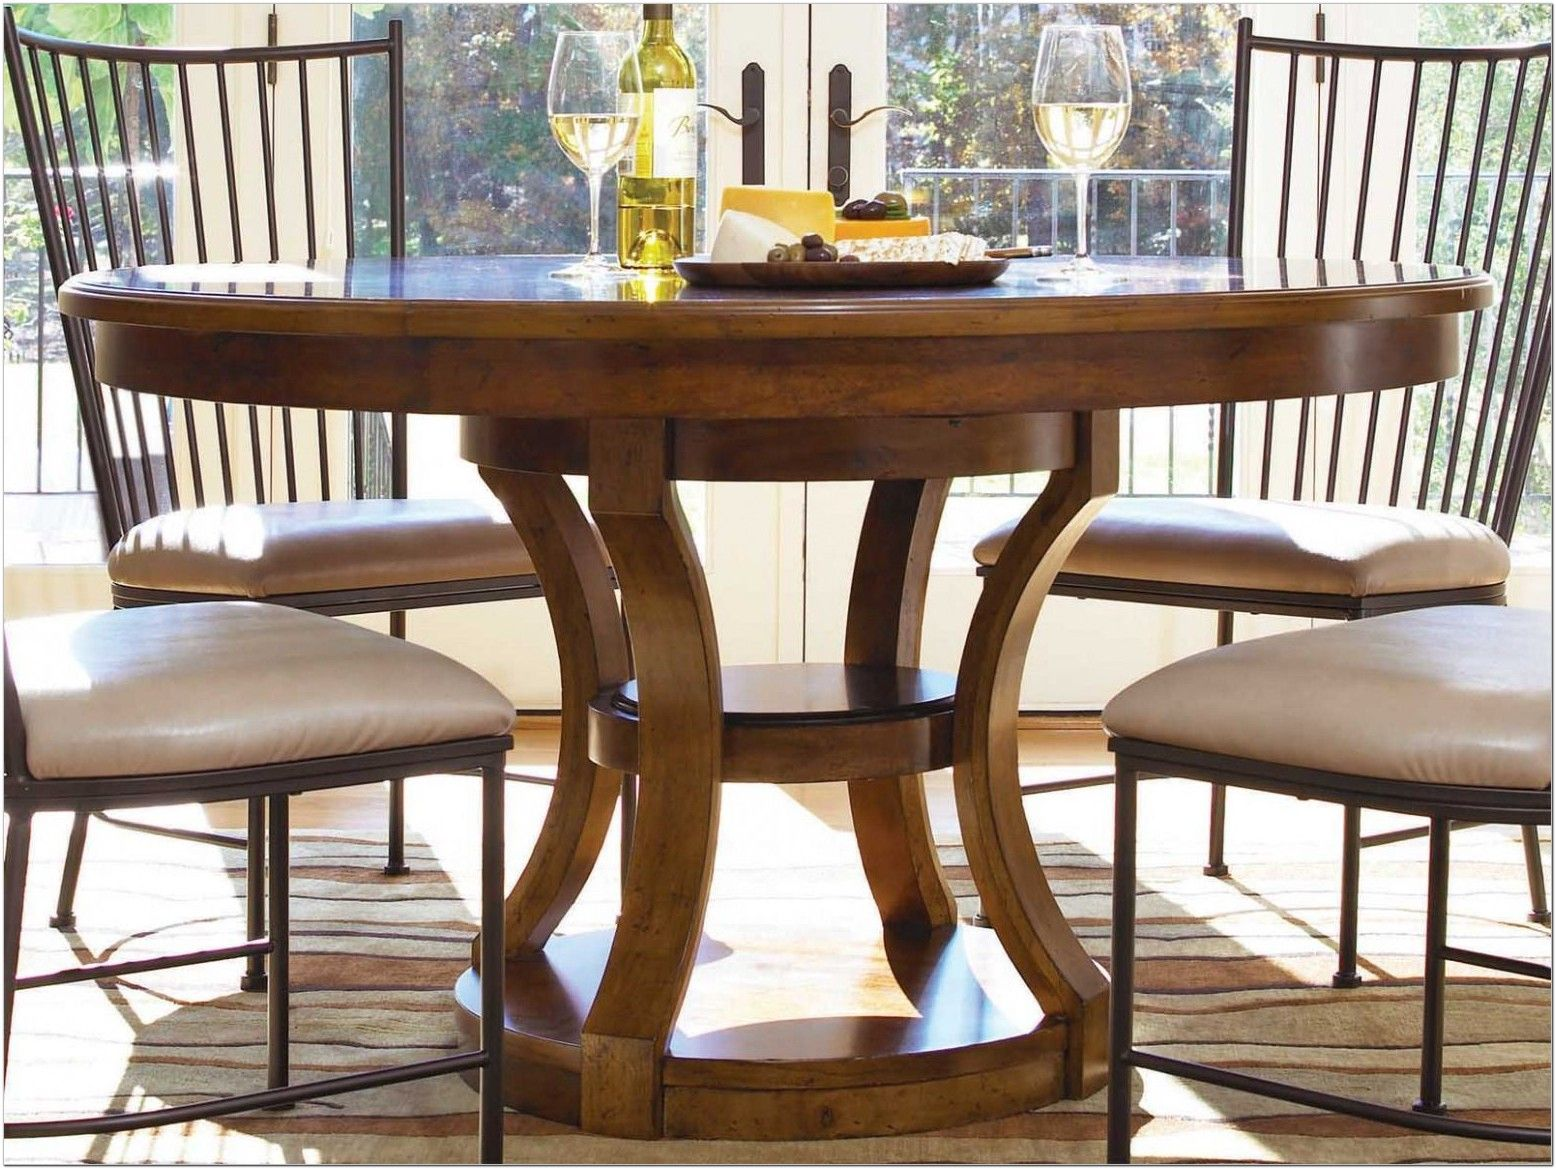 54 Inch Round Pedestal Dining Table Set Pedestal Dining Table